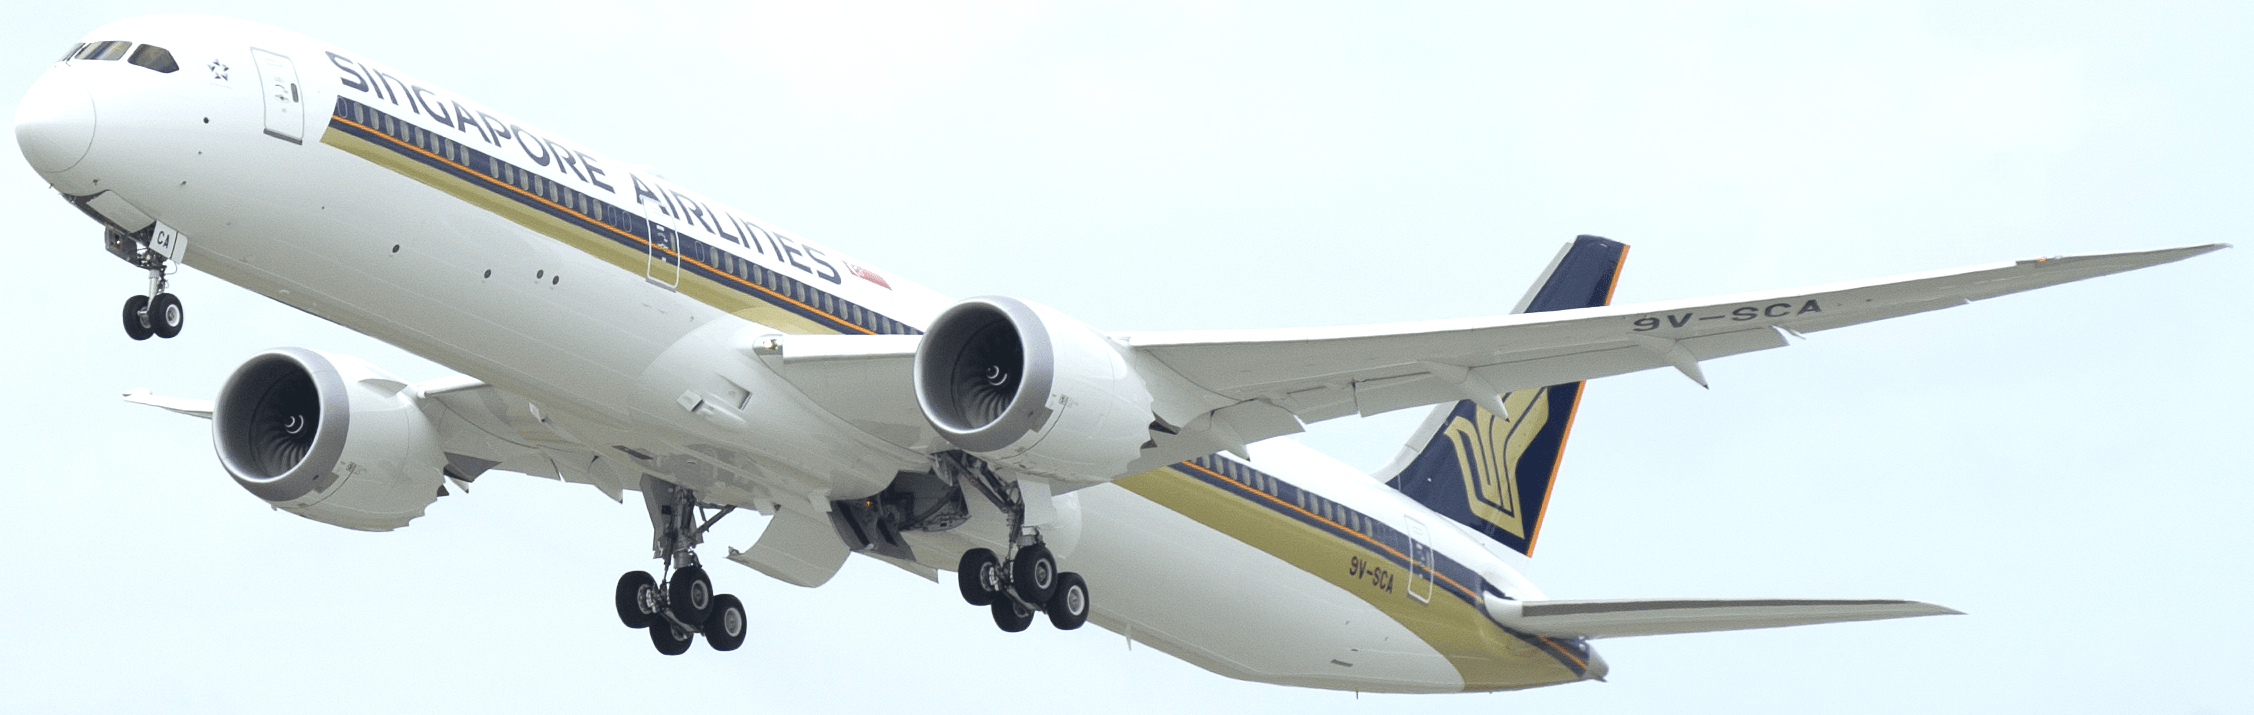 AW-Singapore Airlines_B78710